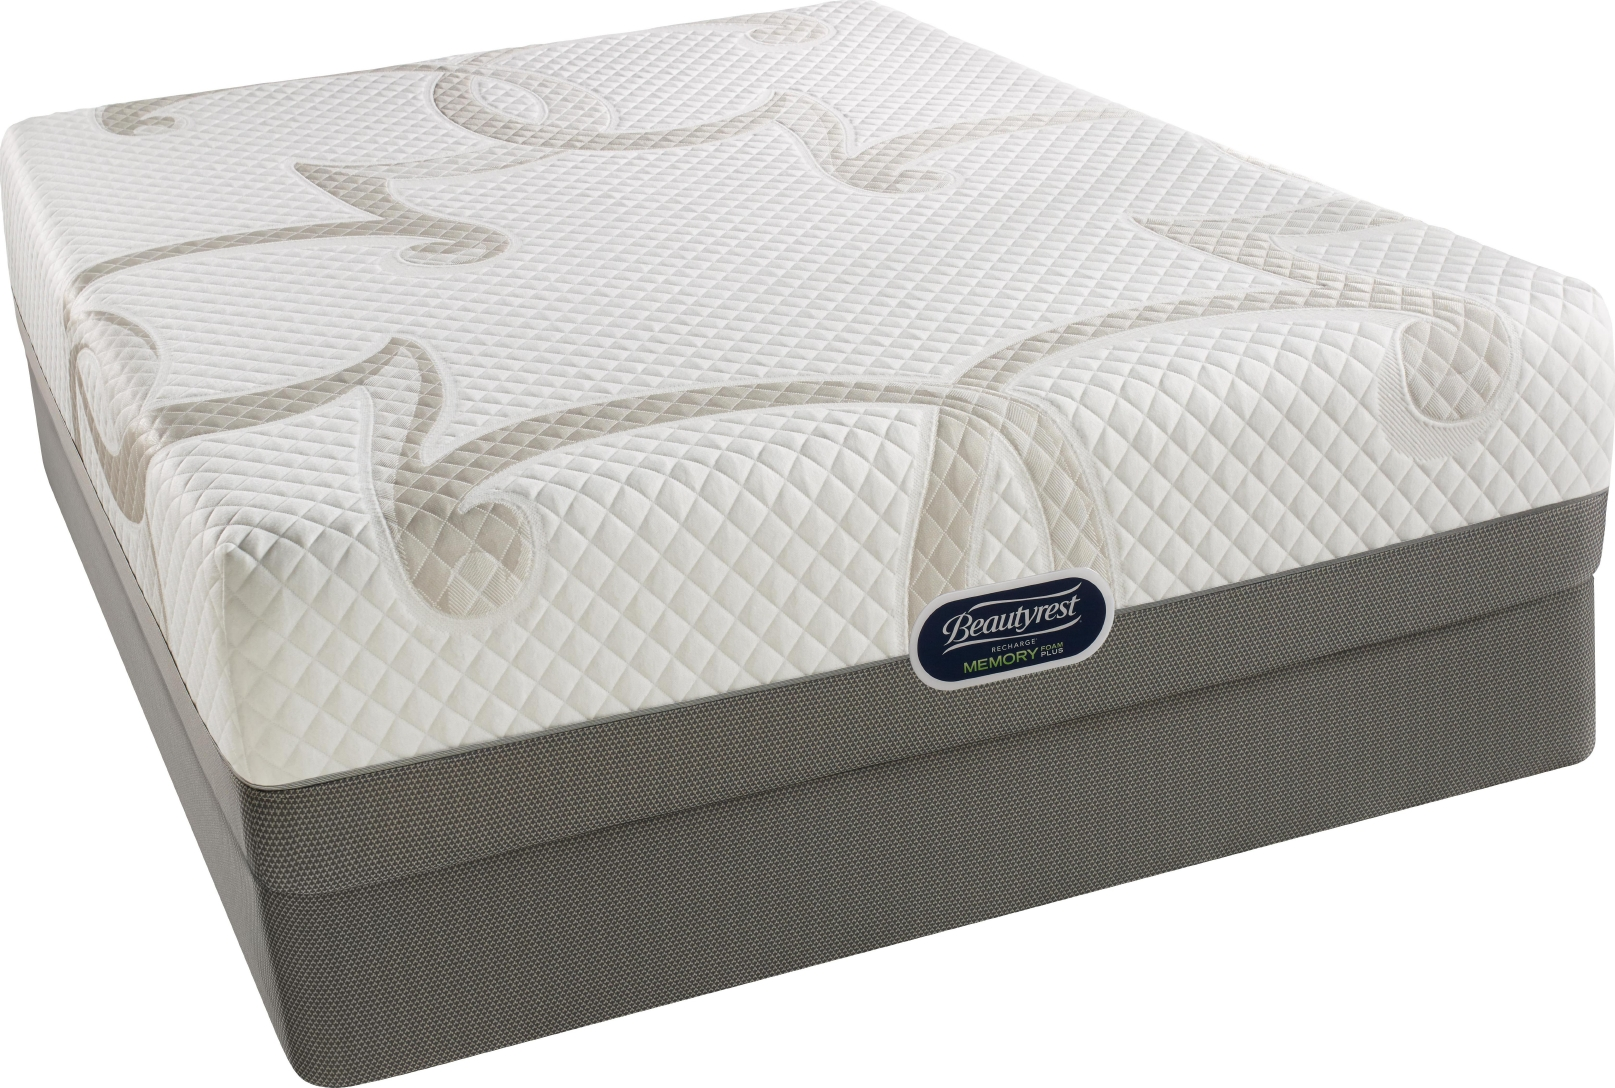 Mattress Simmons Beautyrest | What Is The Best Simmons Beautyrest Mattress | Simmons Beautyrest Mattress